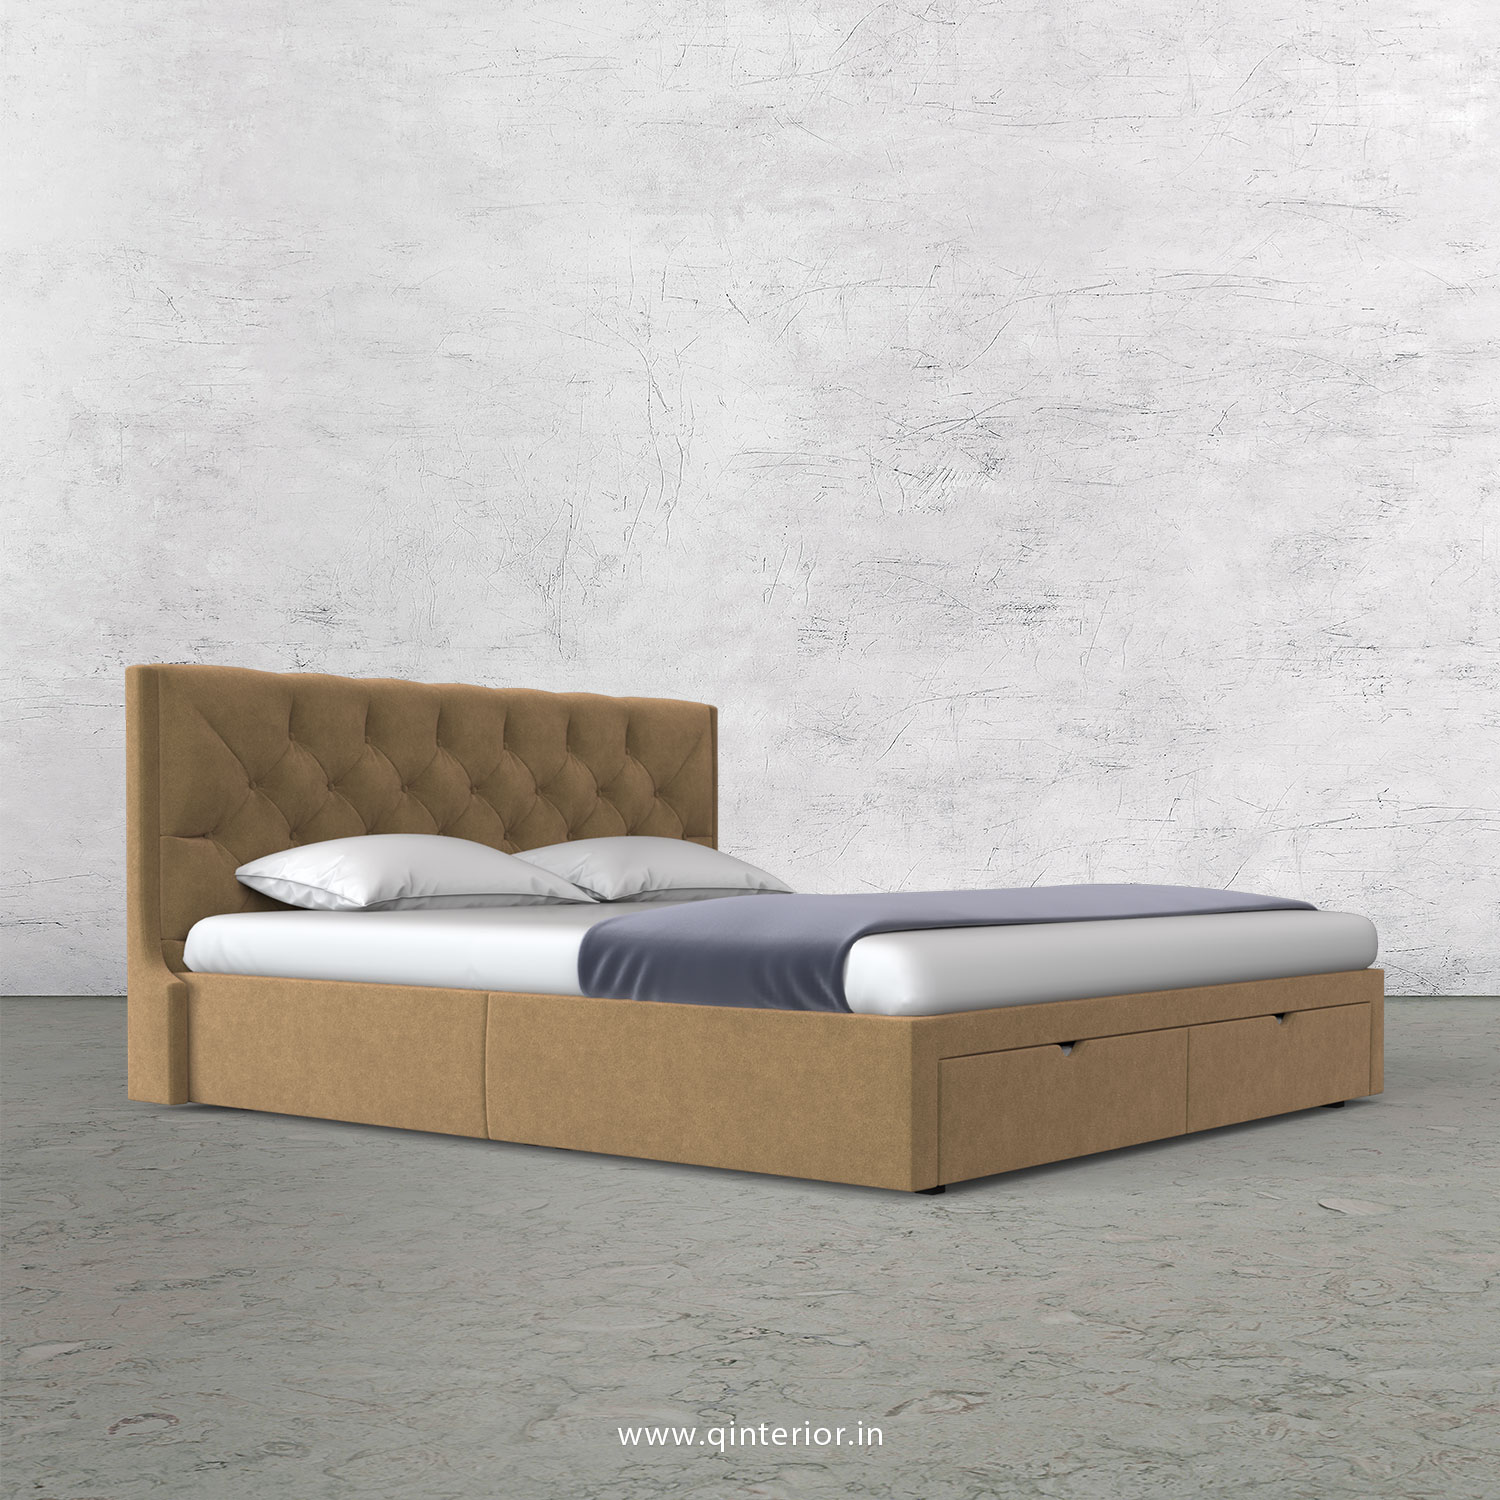 Scorpius Queen Storage Bed in Velvet Fabric - QBD001 VL09